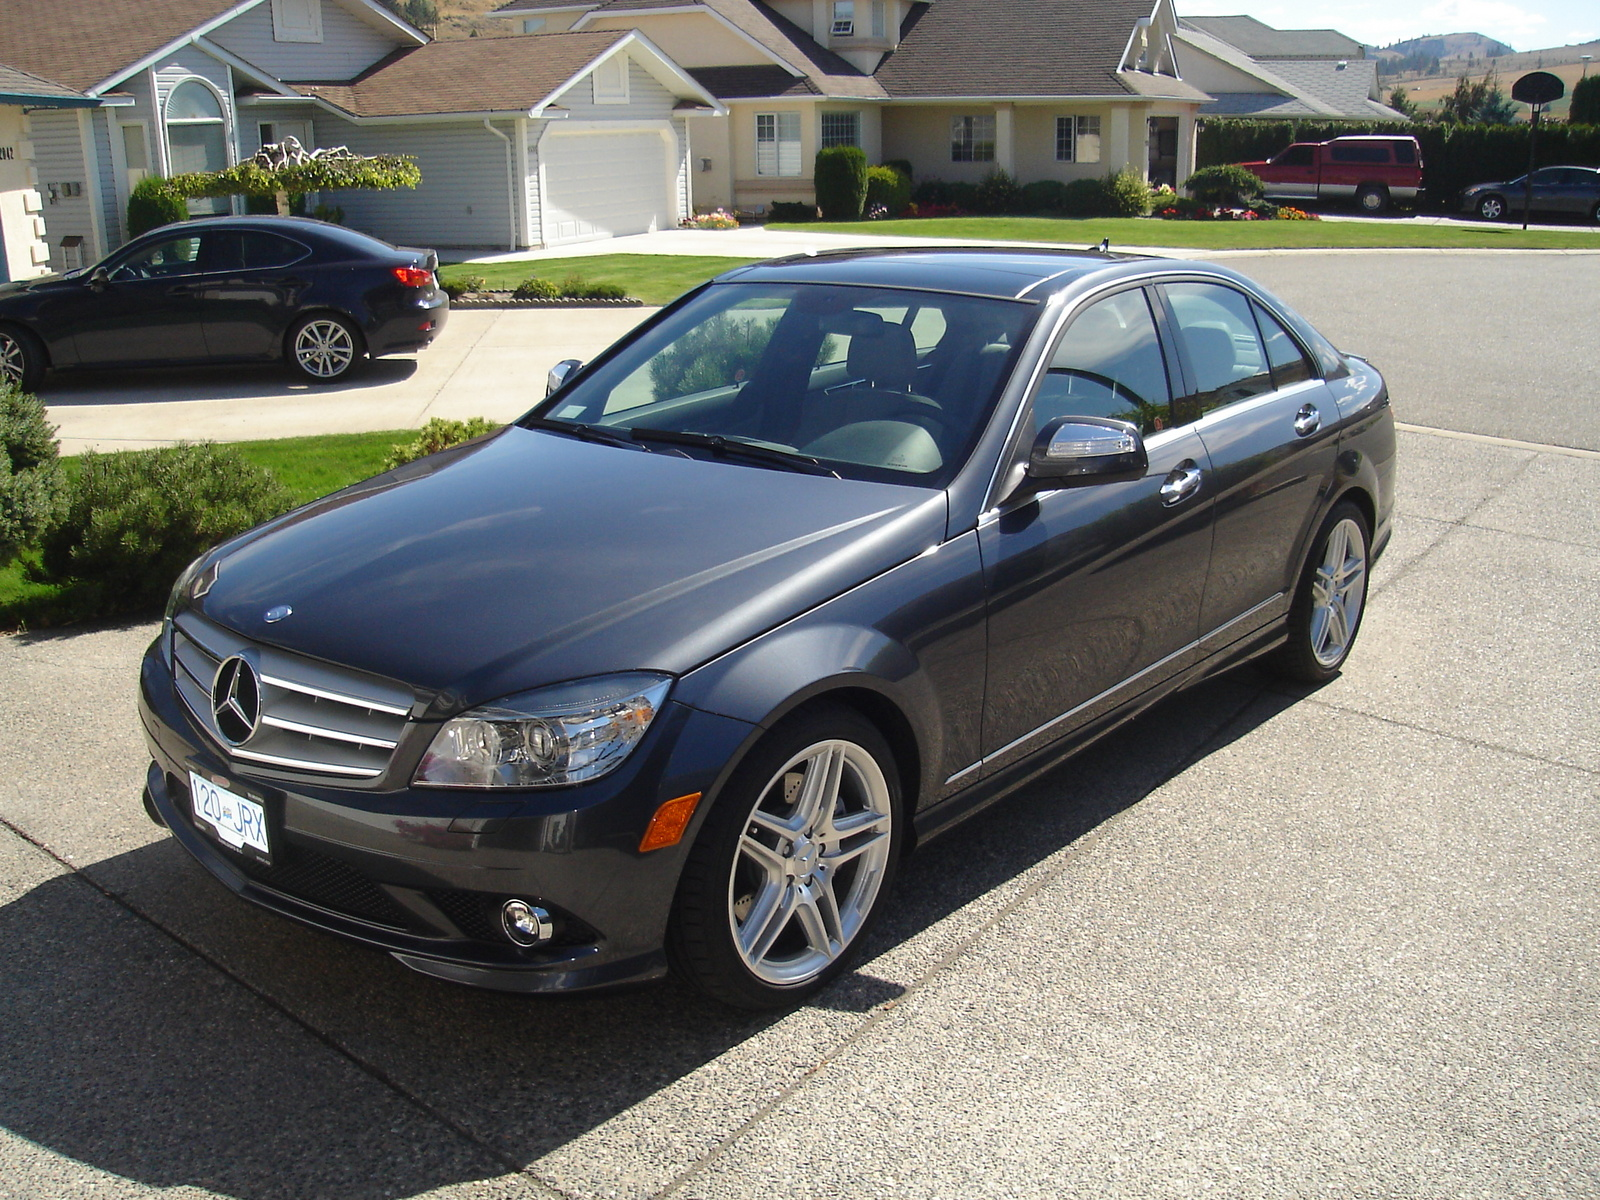 2007 mercedes benz c class exterior pictures cargurus. Black Bedroom Furniture Sets. Home Design Ideas